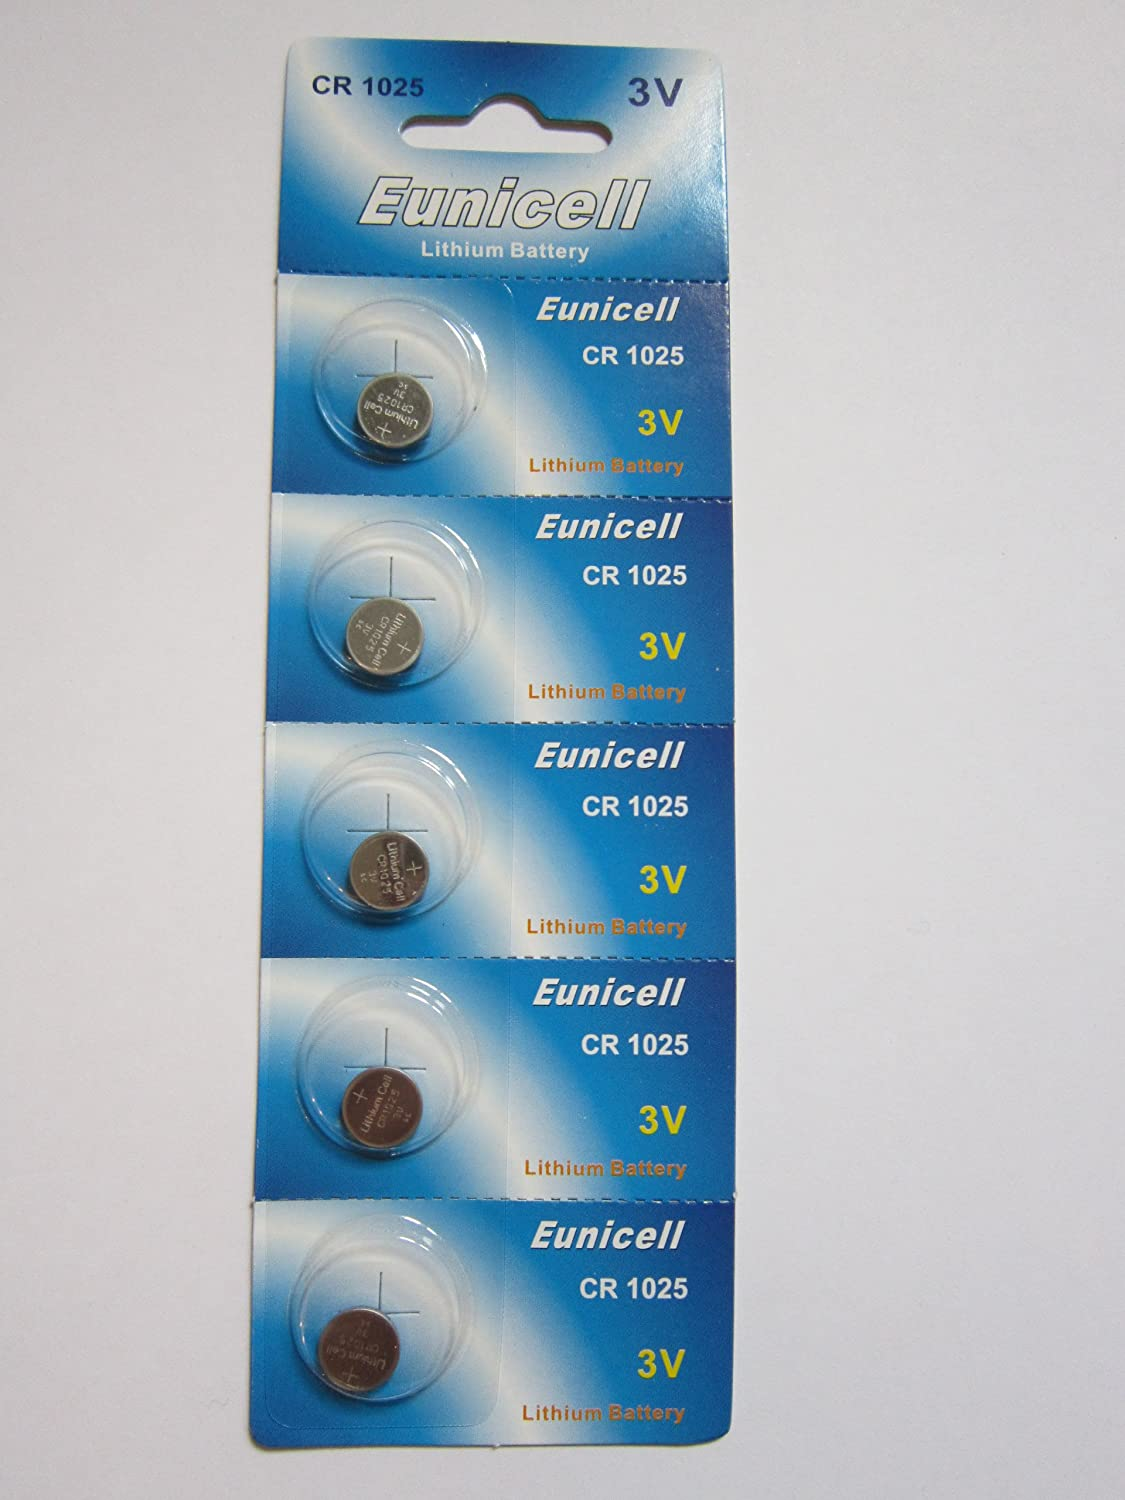 5 Pcs CR1025 CR 1025 - 3V Eunicell Lithium Button Cell Battery Batteries - BRAND NEW IN FACTORY PACKAGING